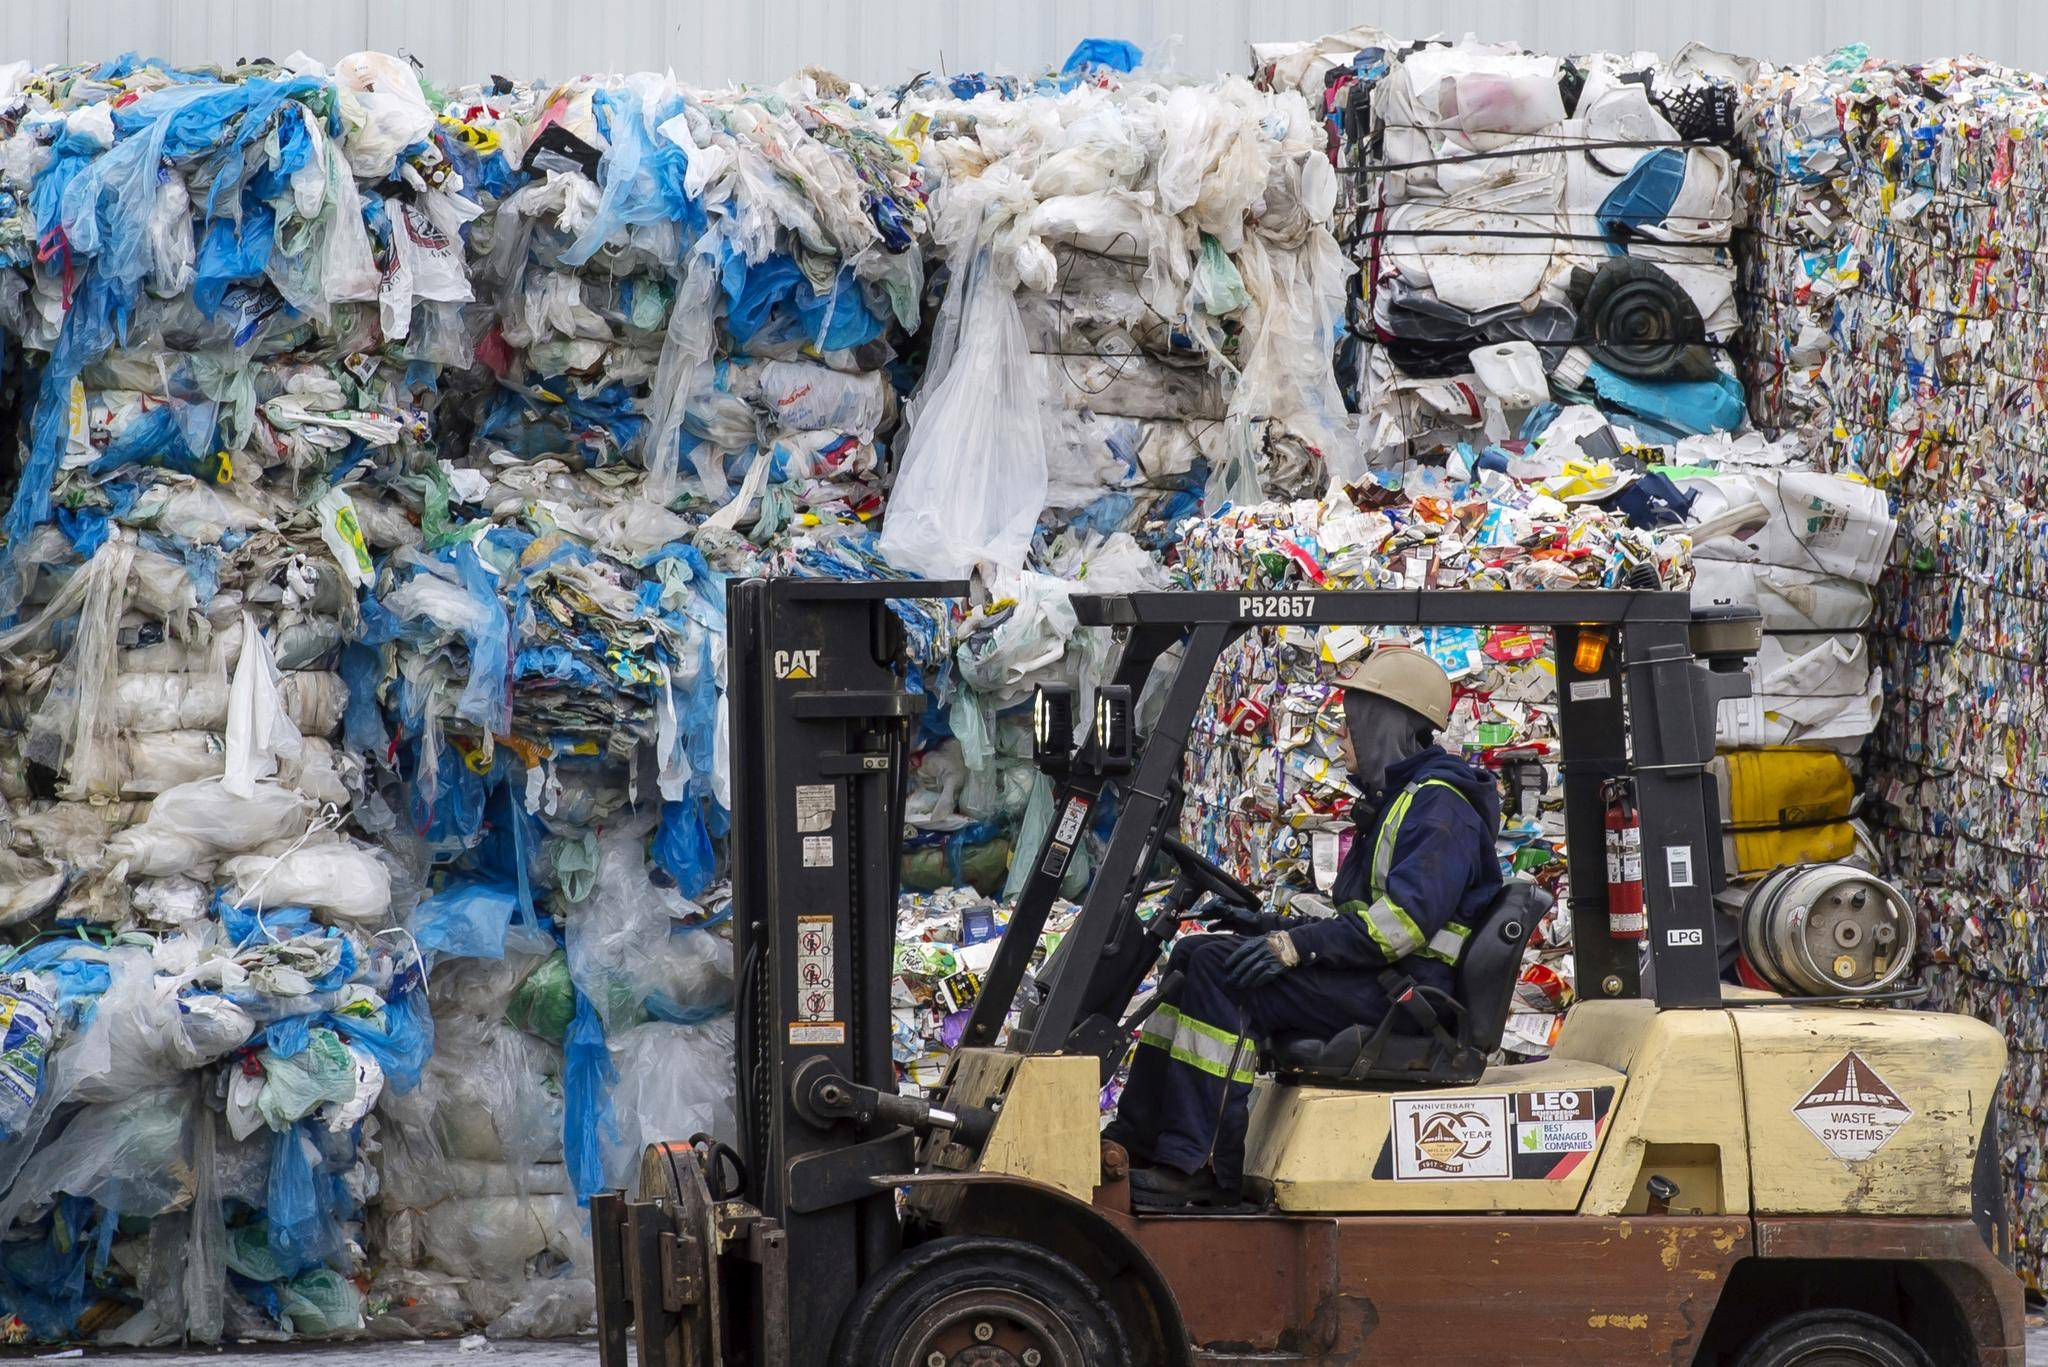 China's tough new recycling standards leaving Canadian